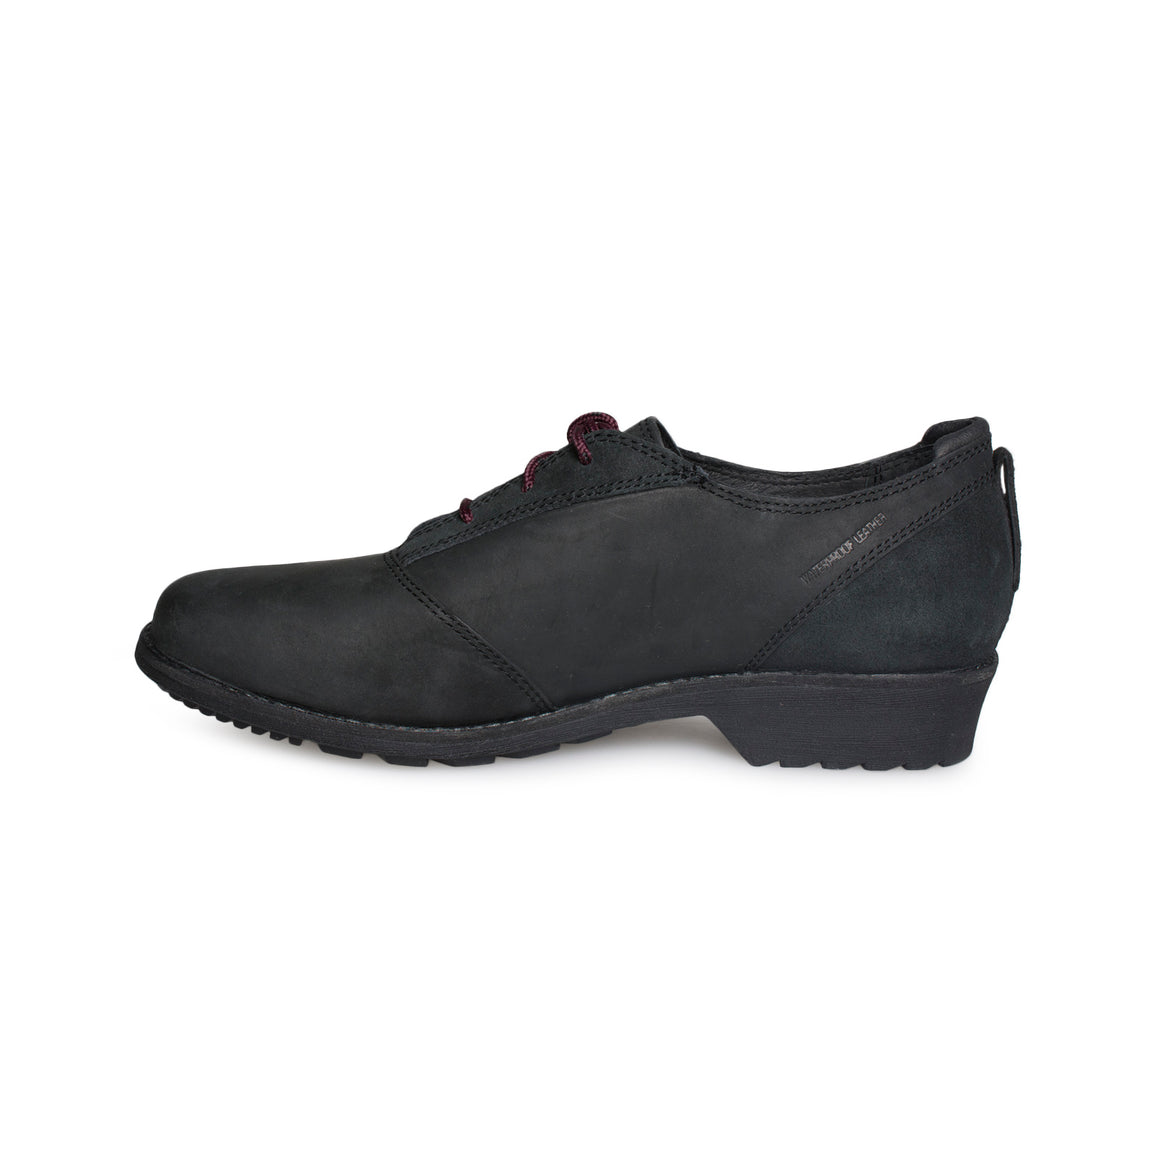 Teva De La Vina Dos Black Shoe - Women's